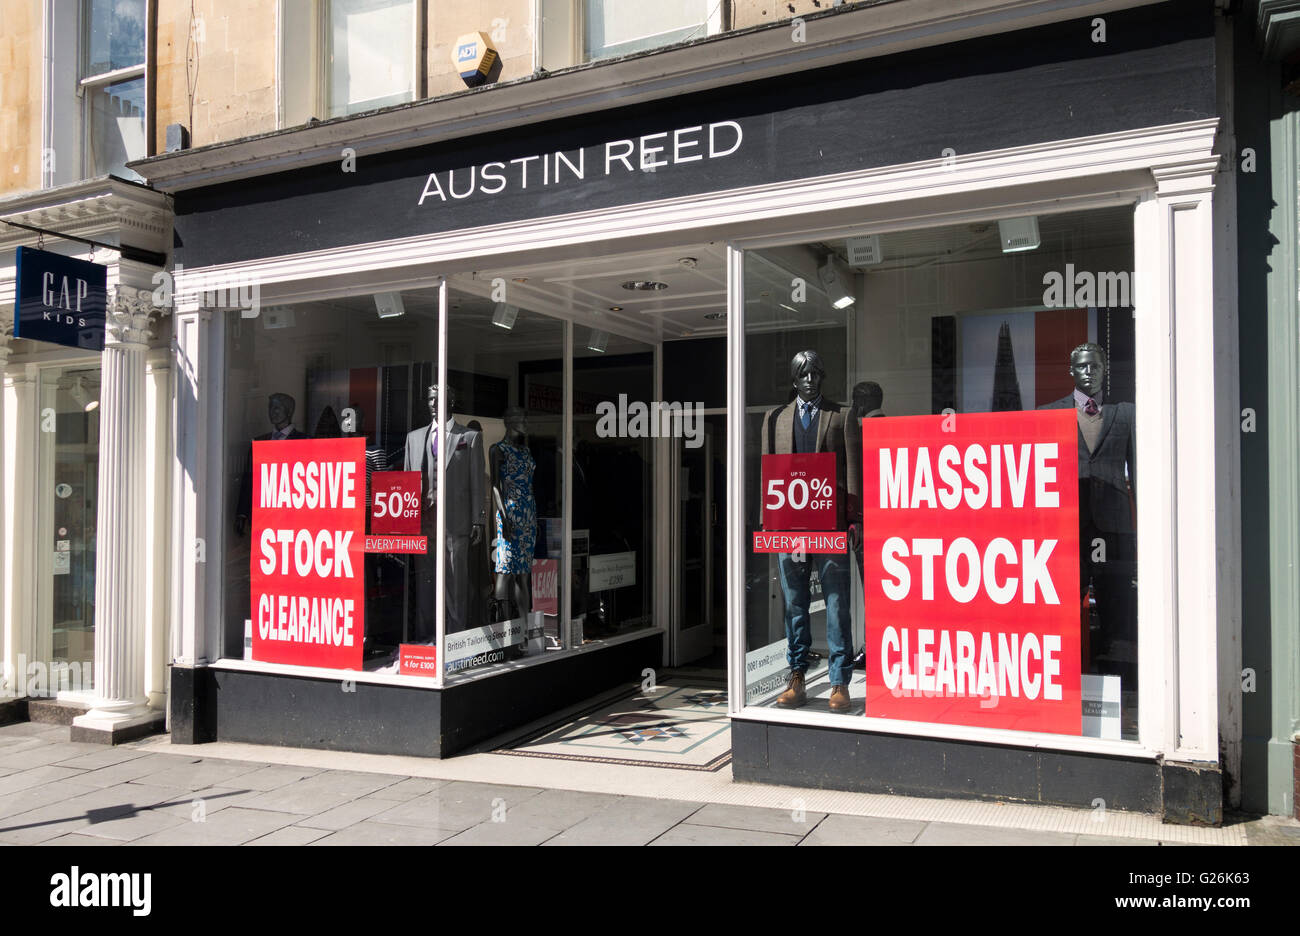 Austin Reed Store Bath England Stock Photo Alamy